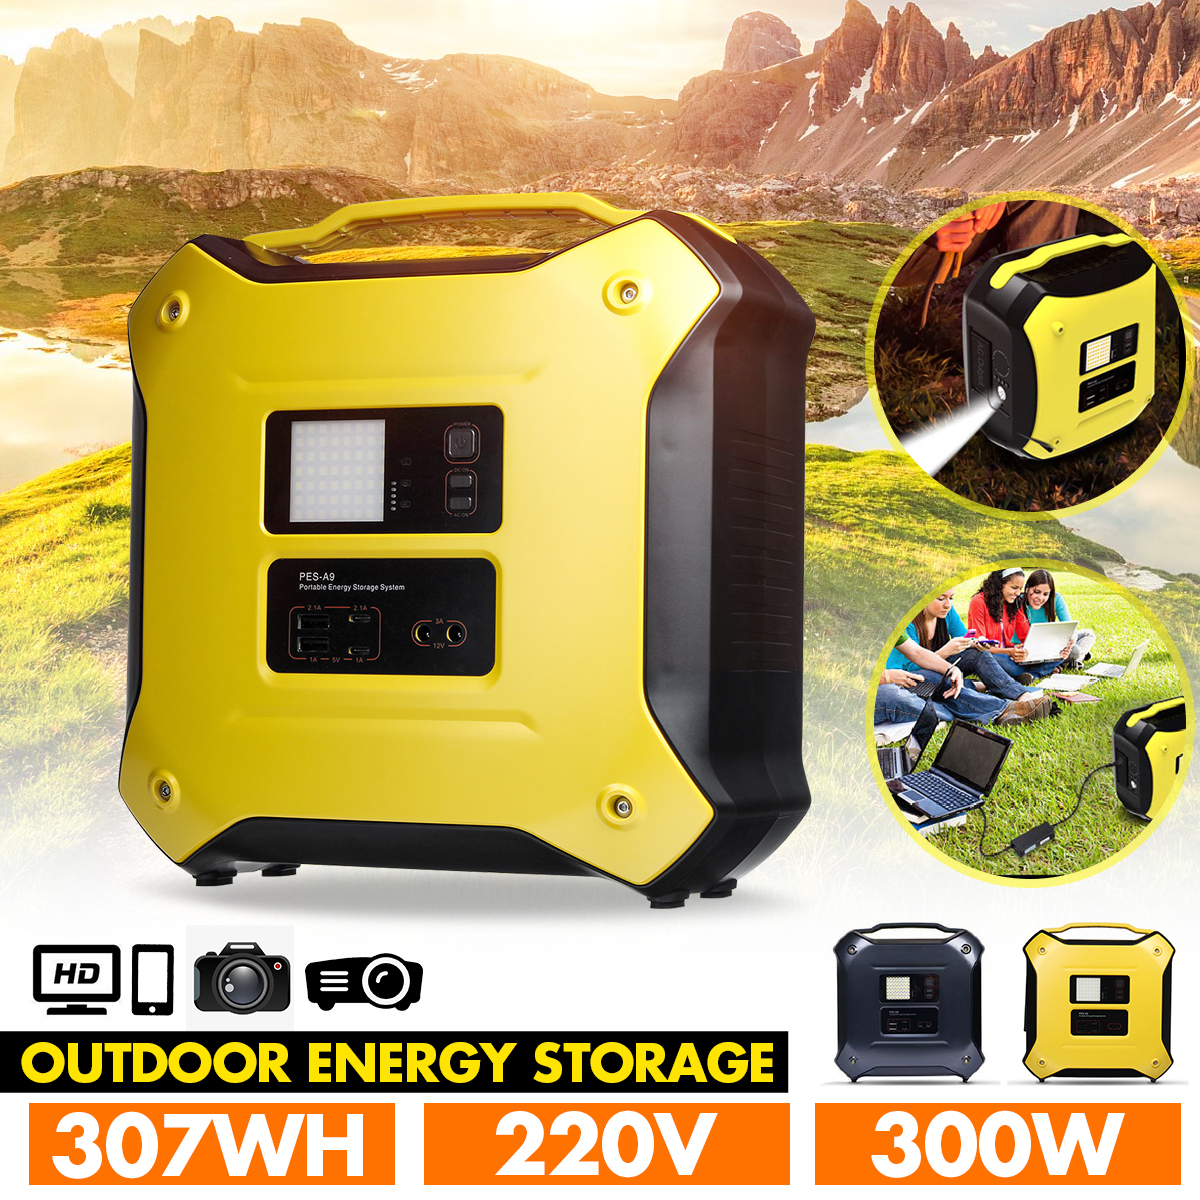 300W 220V Portable Energy Storage System Solar Inverter Generator bluetooth4.0 Outdoor UPS AC/DC Battery Charge Powers Supply